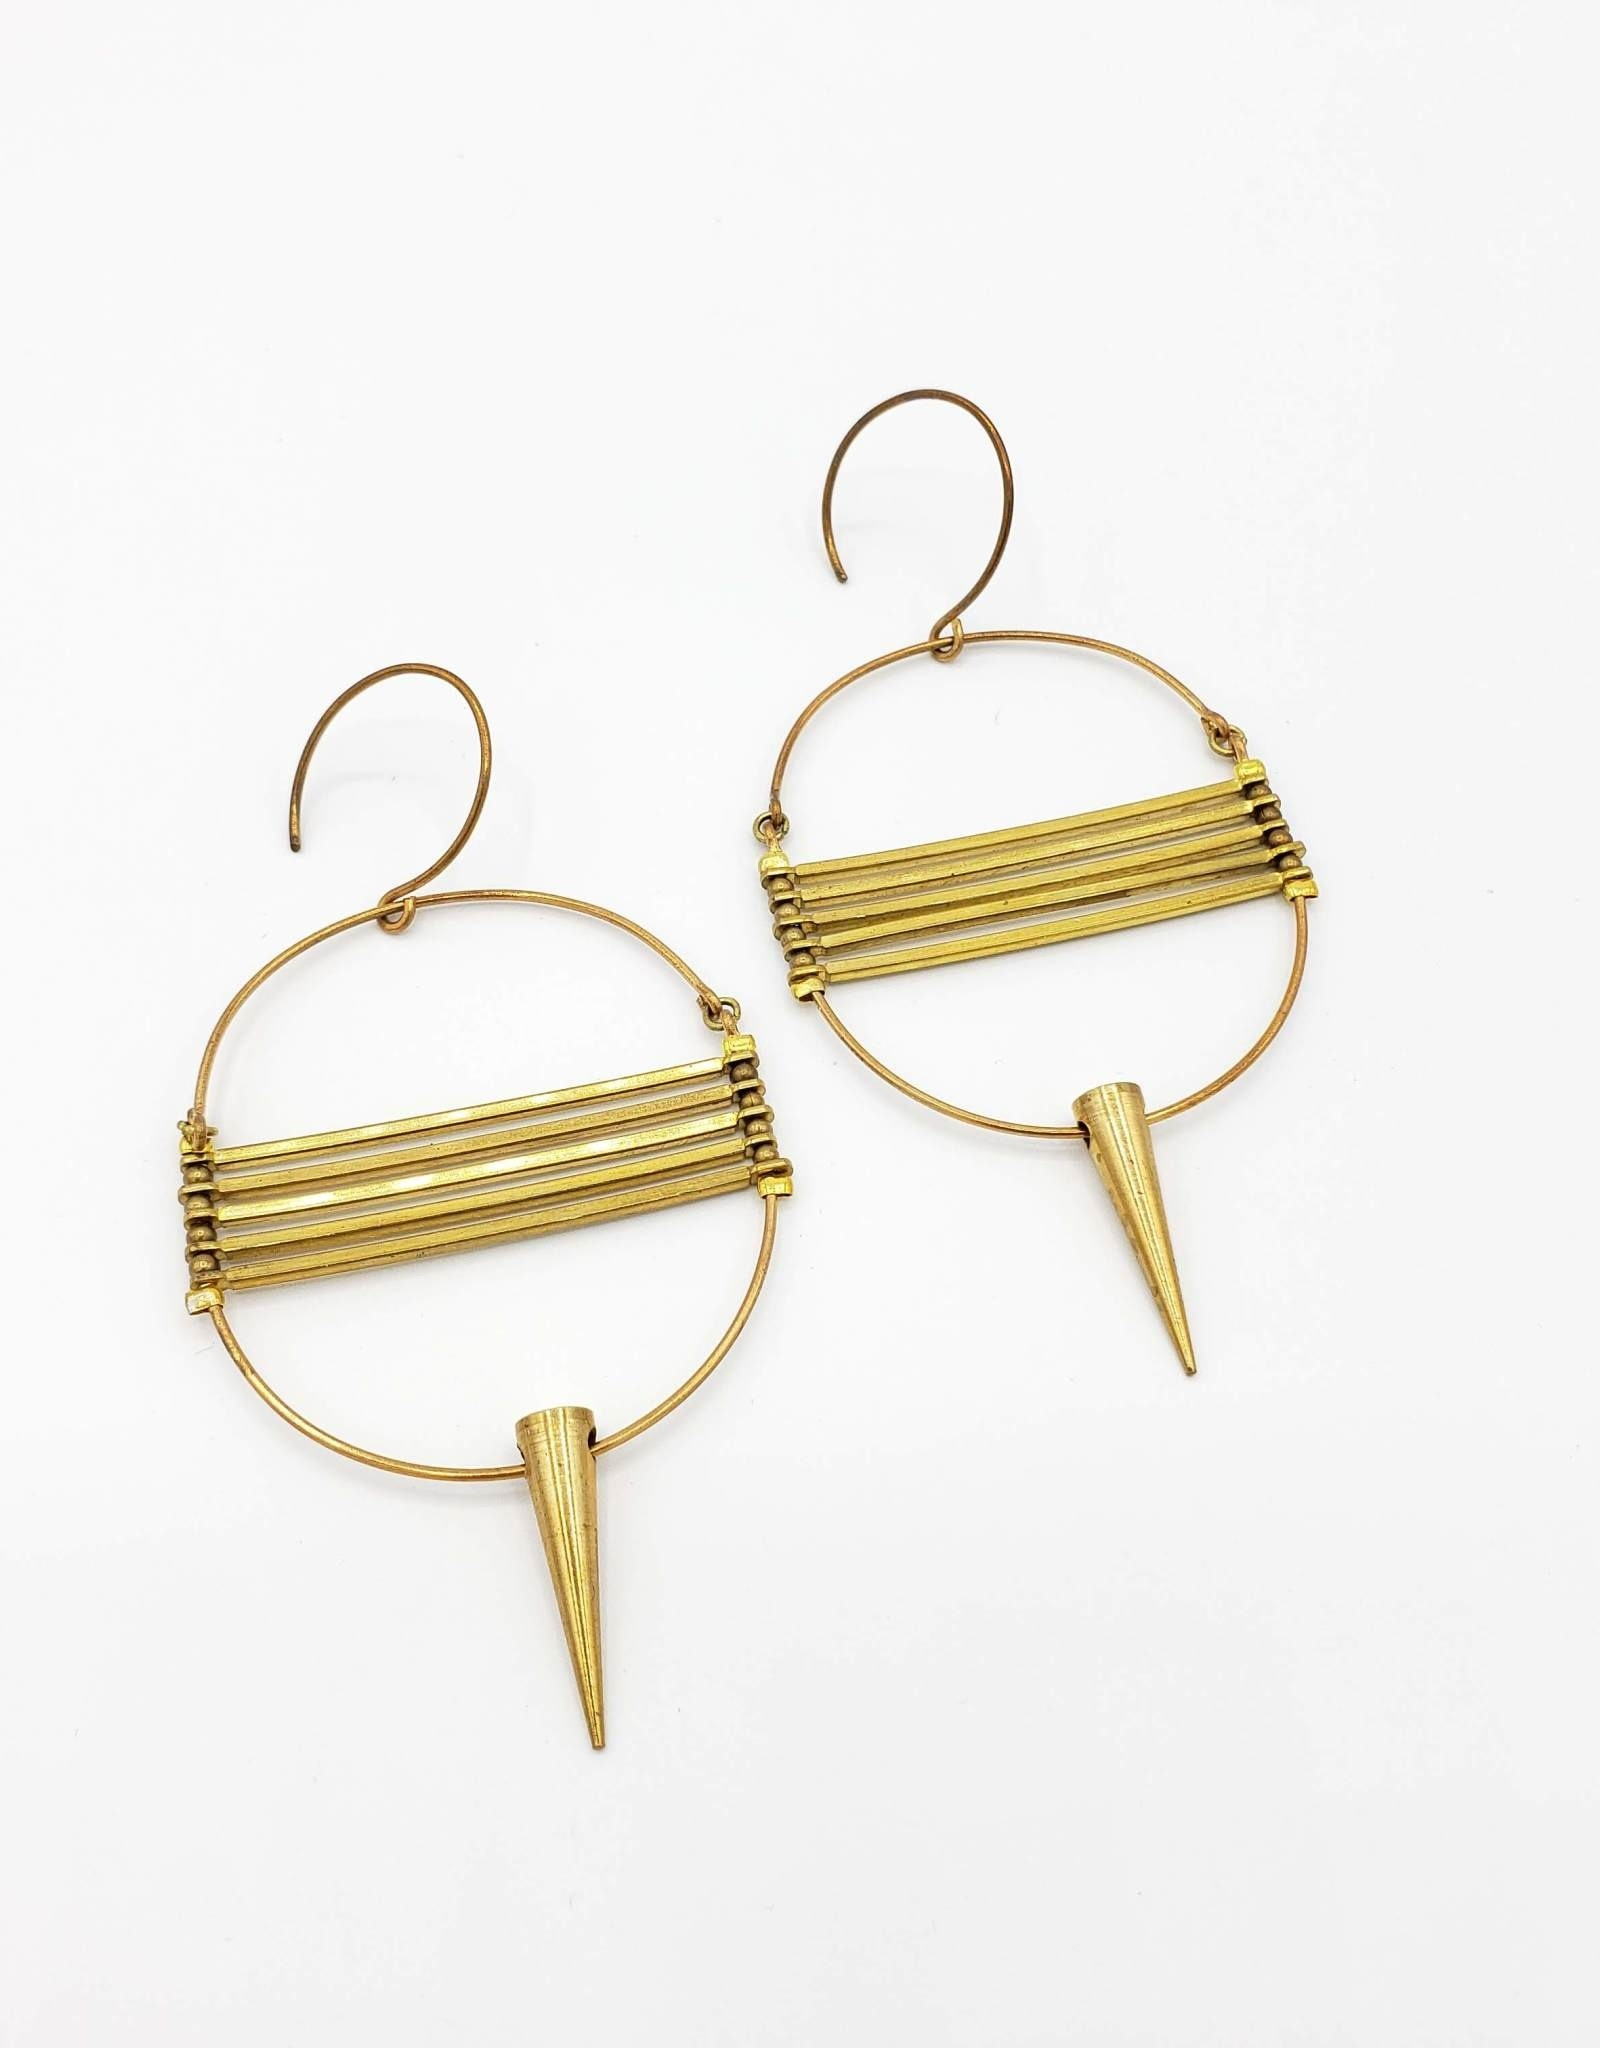 Jenevier Blaine Circular Earrings with Brass Points and Horizontal Bars